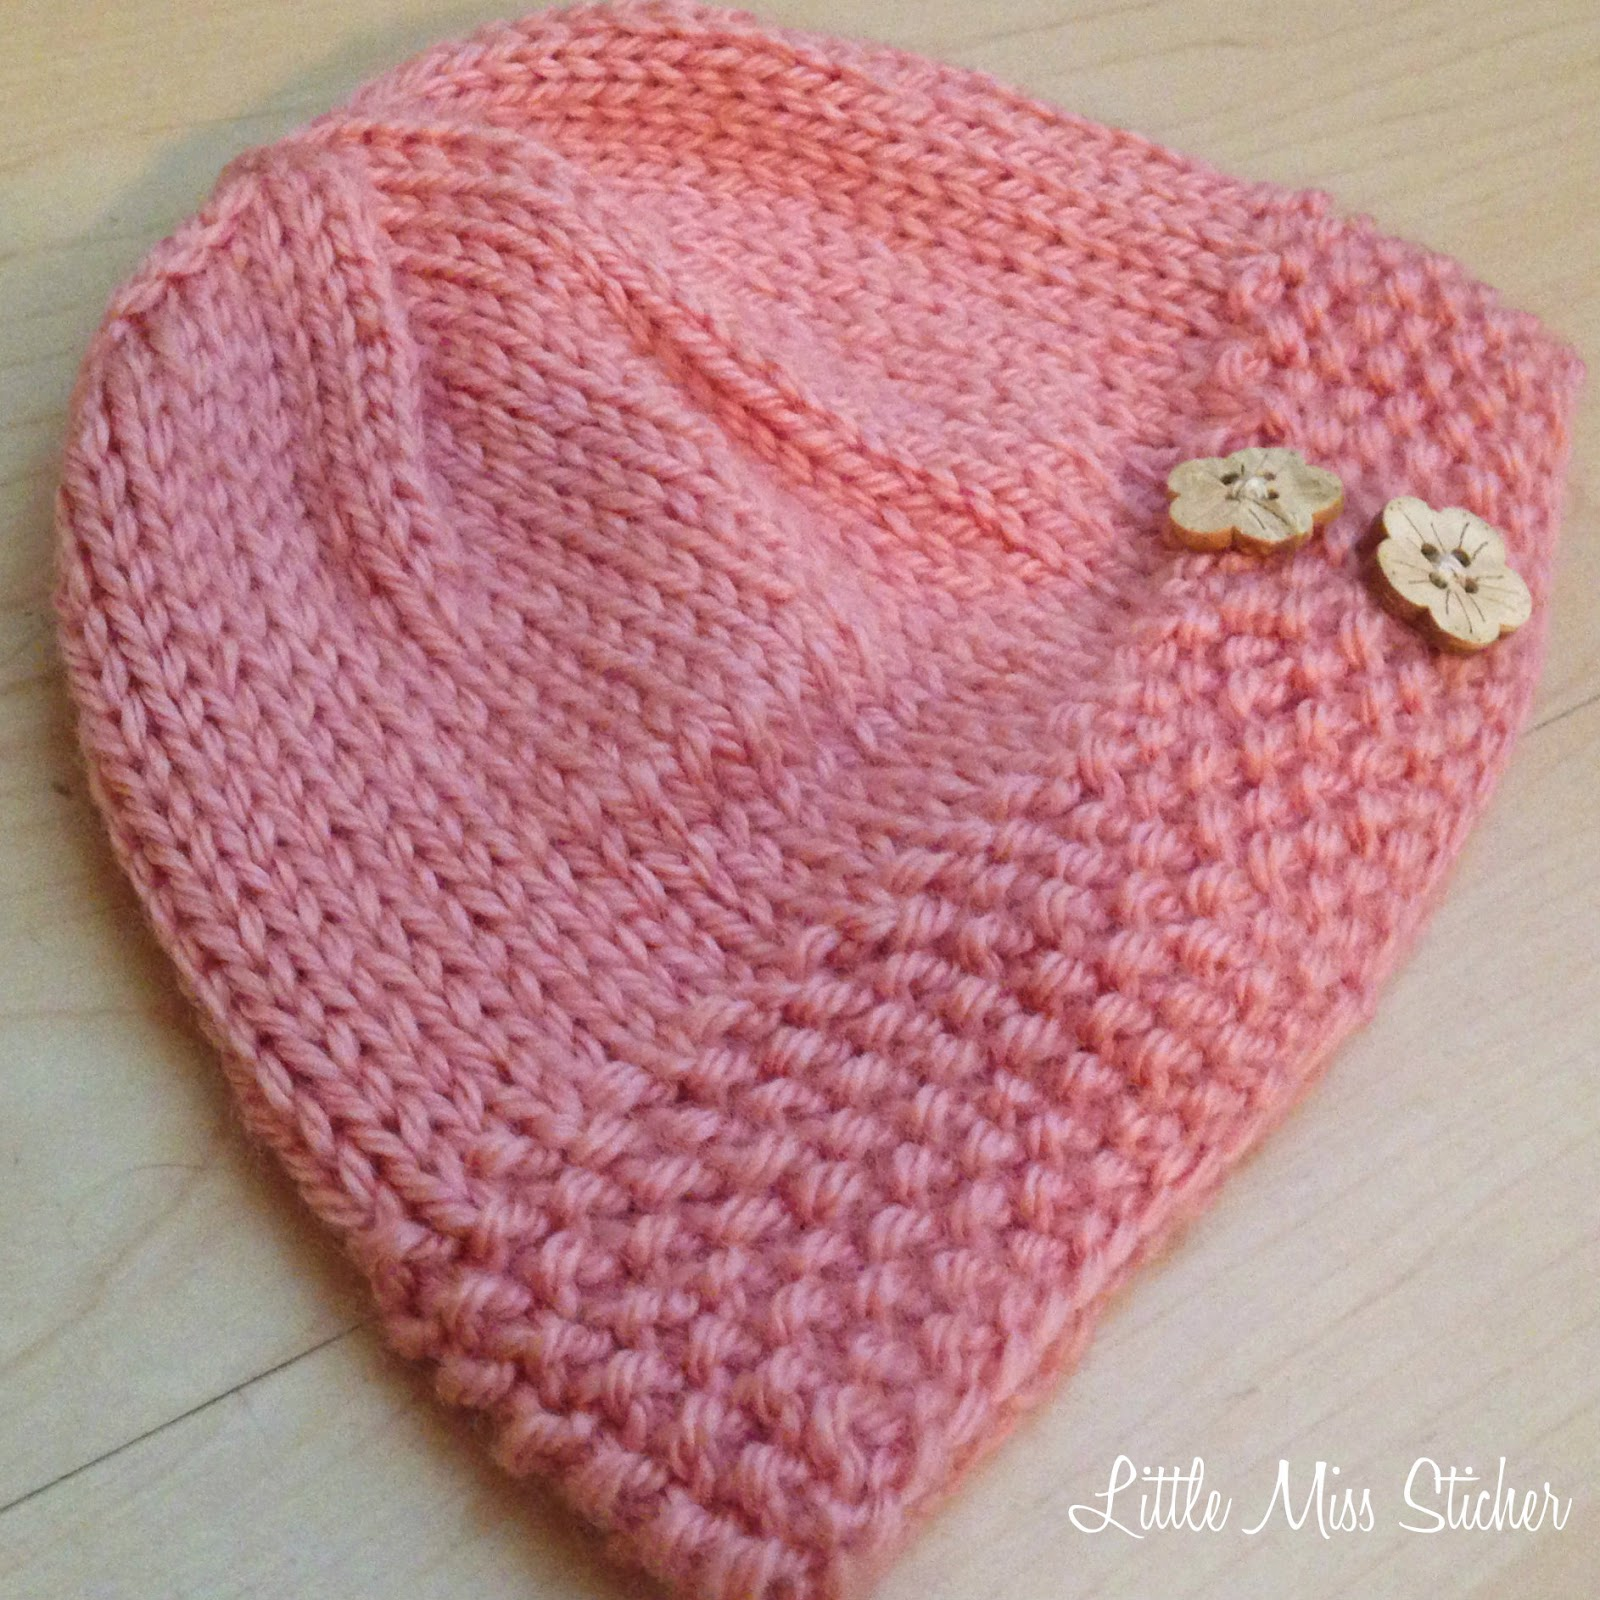 Toddler Beanie Knitting Pattern : Little Miss Stitcher: Bitty Beanie Free Knit Pattern